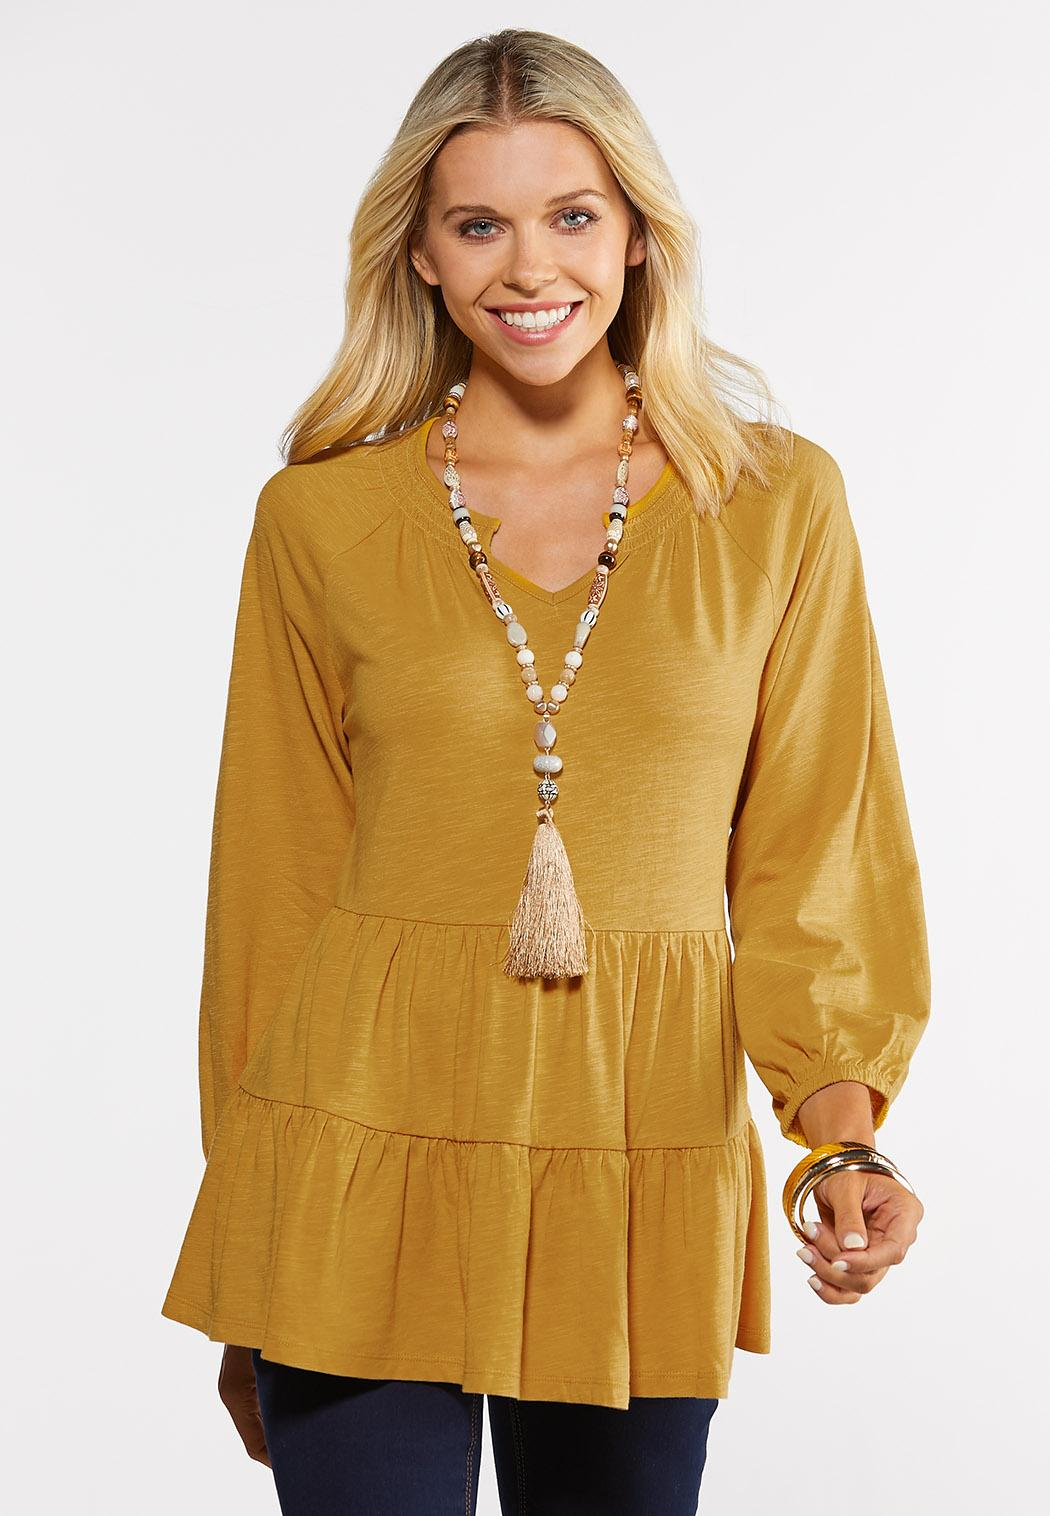 Sunny Tiered Top